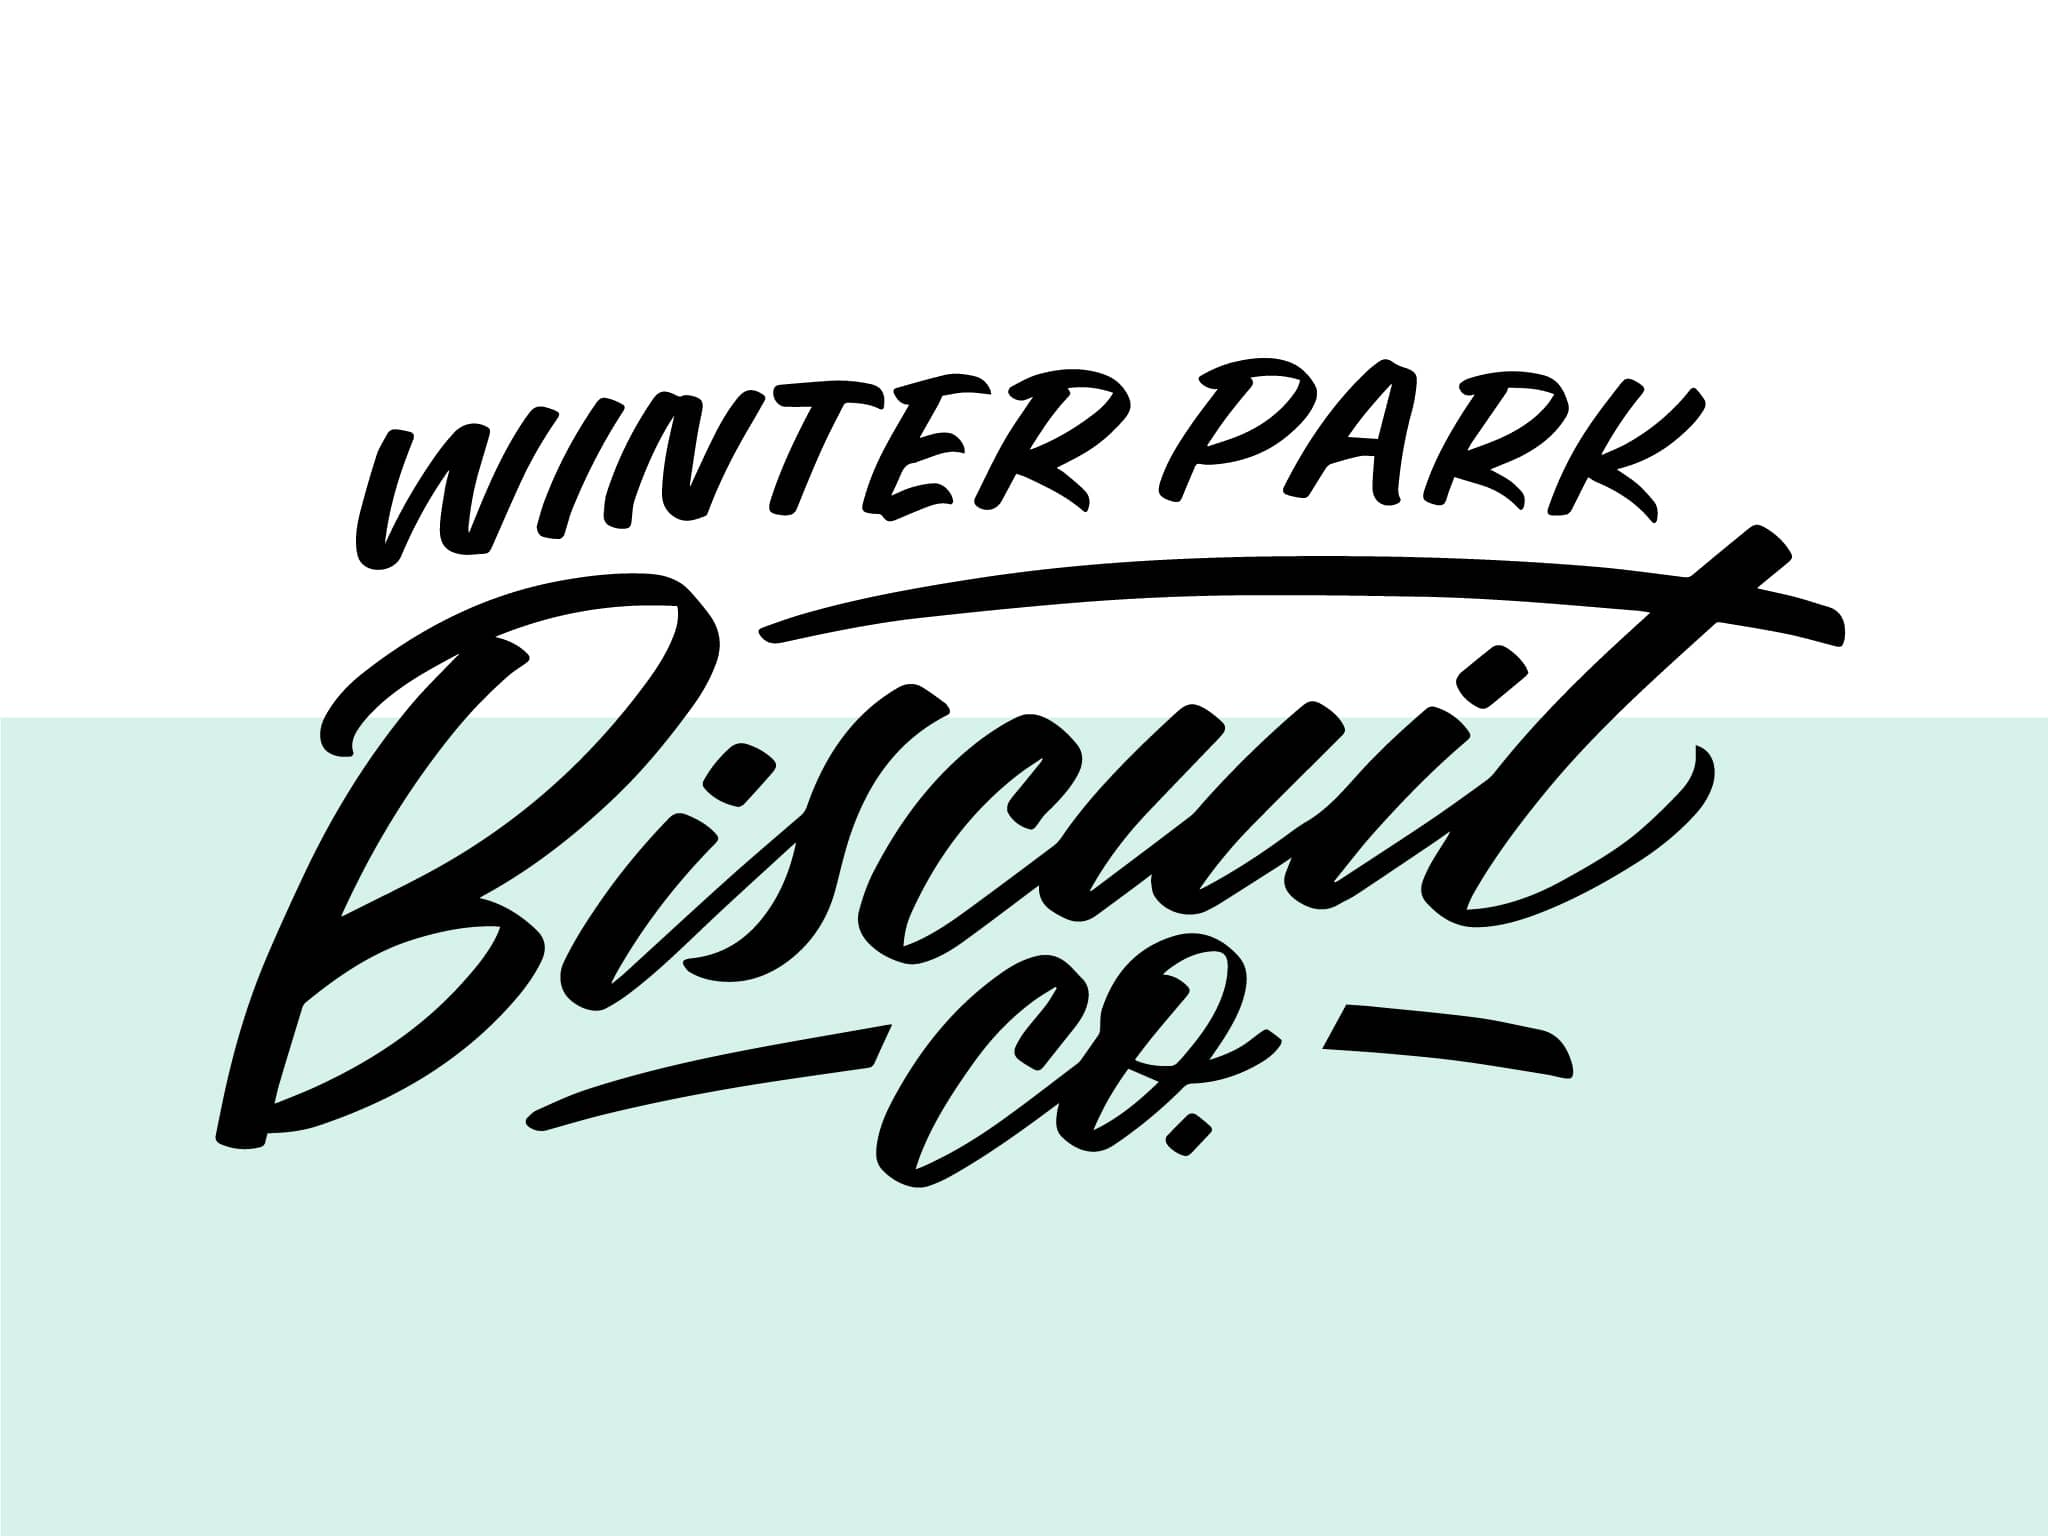 Winter Park Biscuit Co. hand lettered brush lettering logo